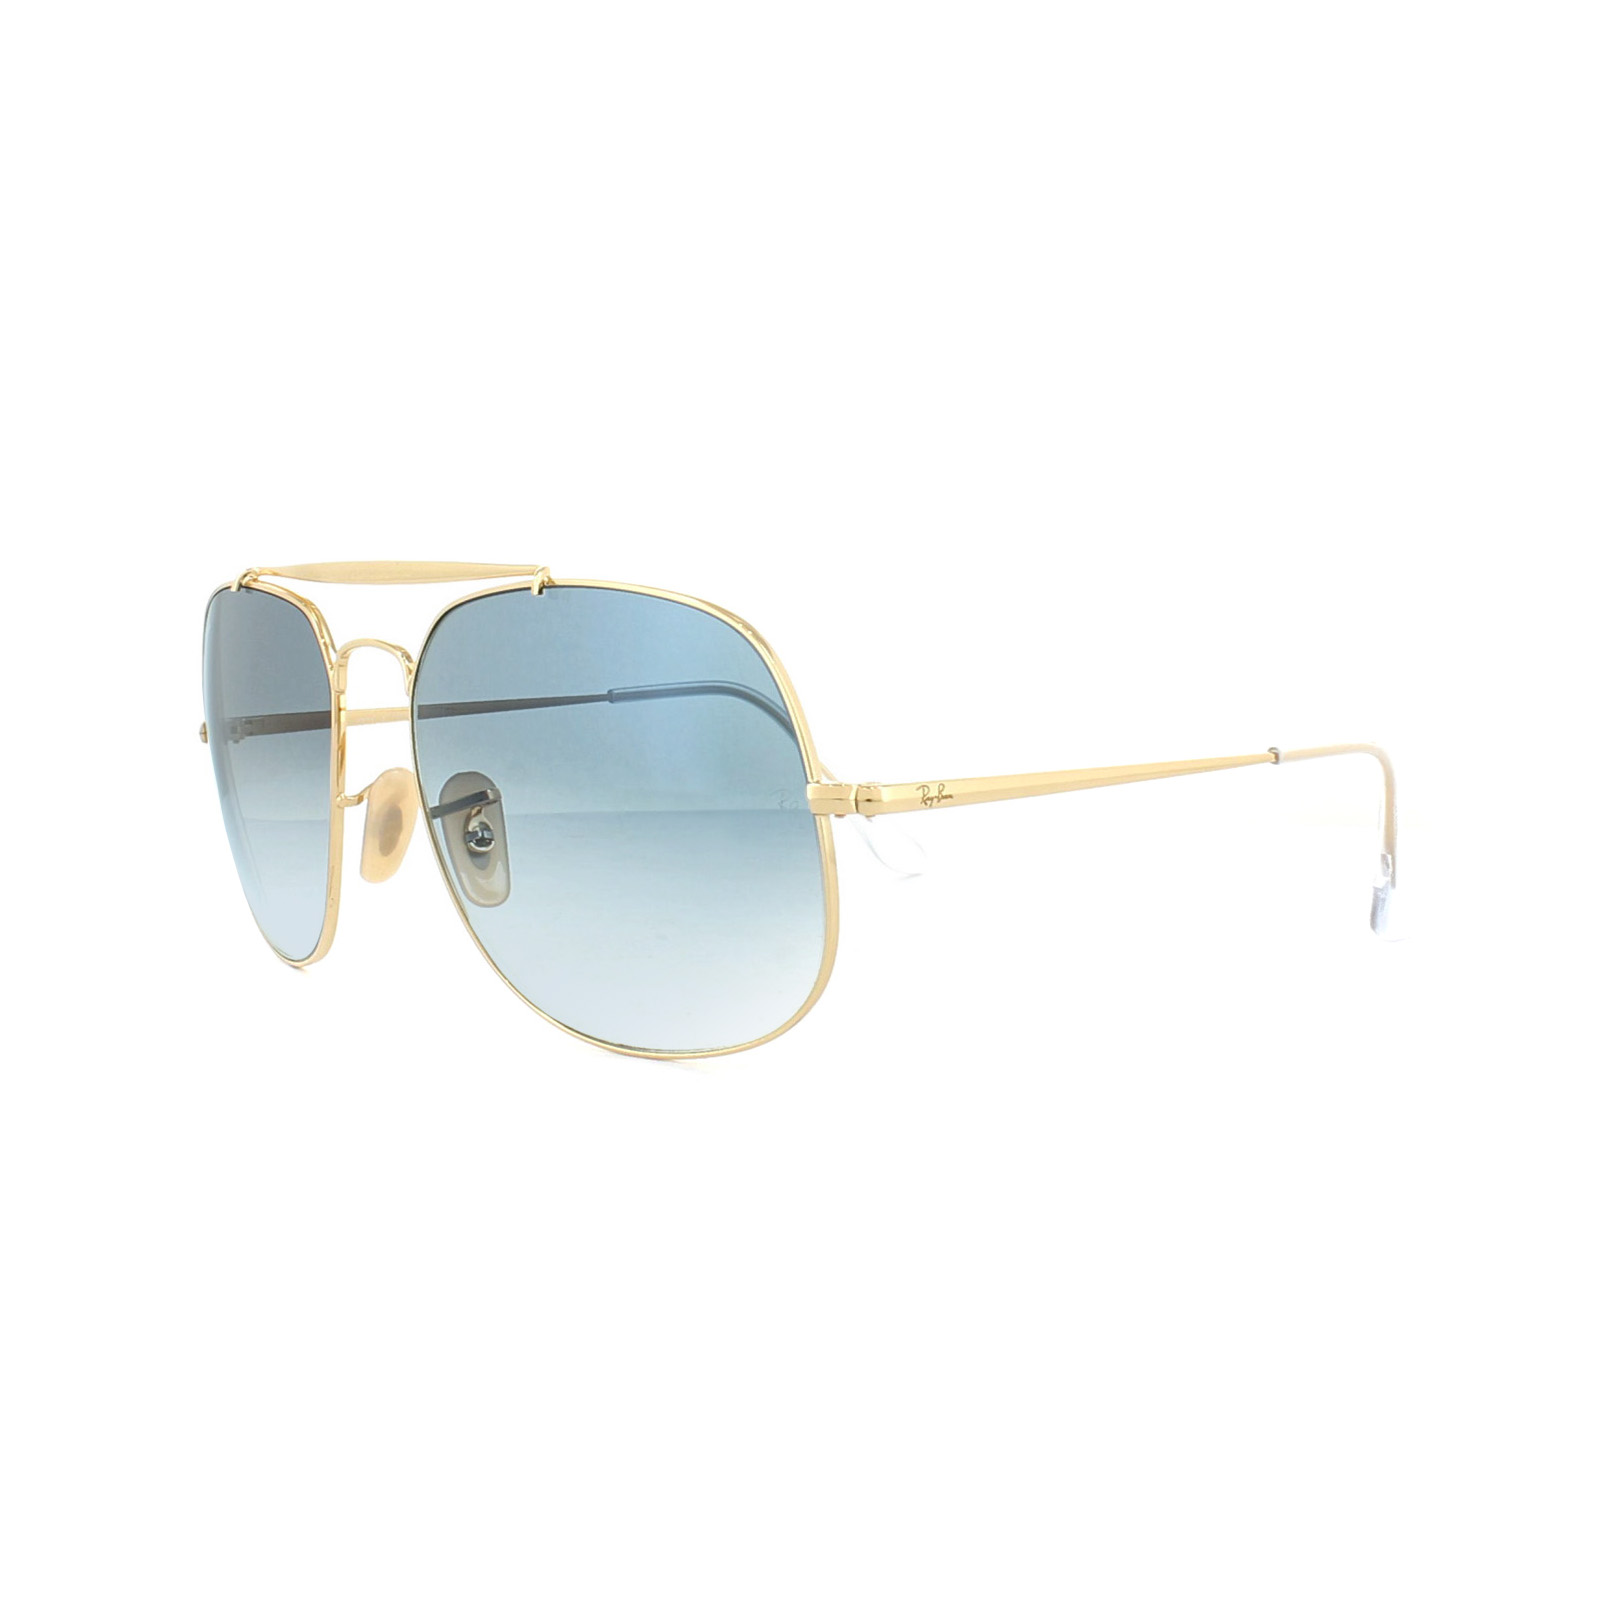 26e1983381e Sentinel Ray-Ban Sunglasses General 3561 001 3F Gold Light Blue Gradient